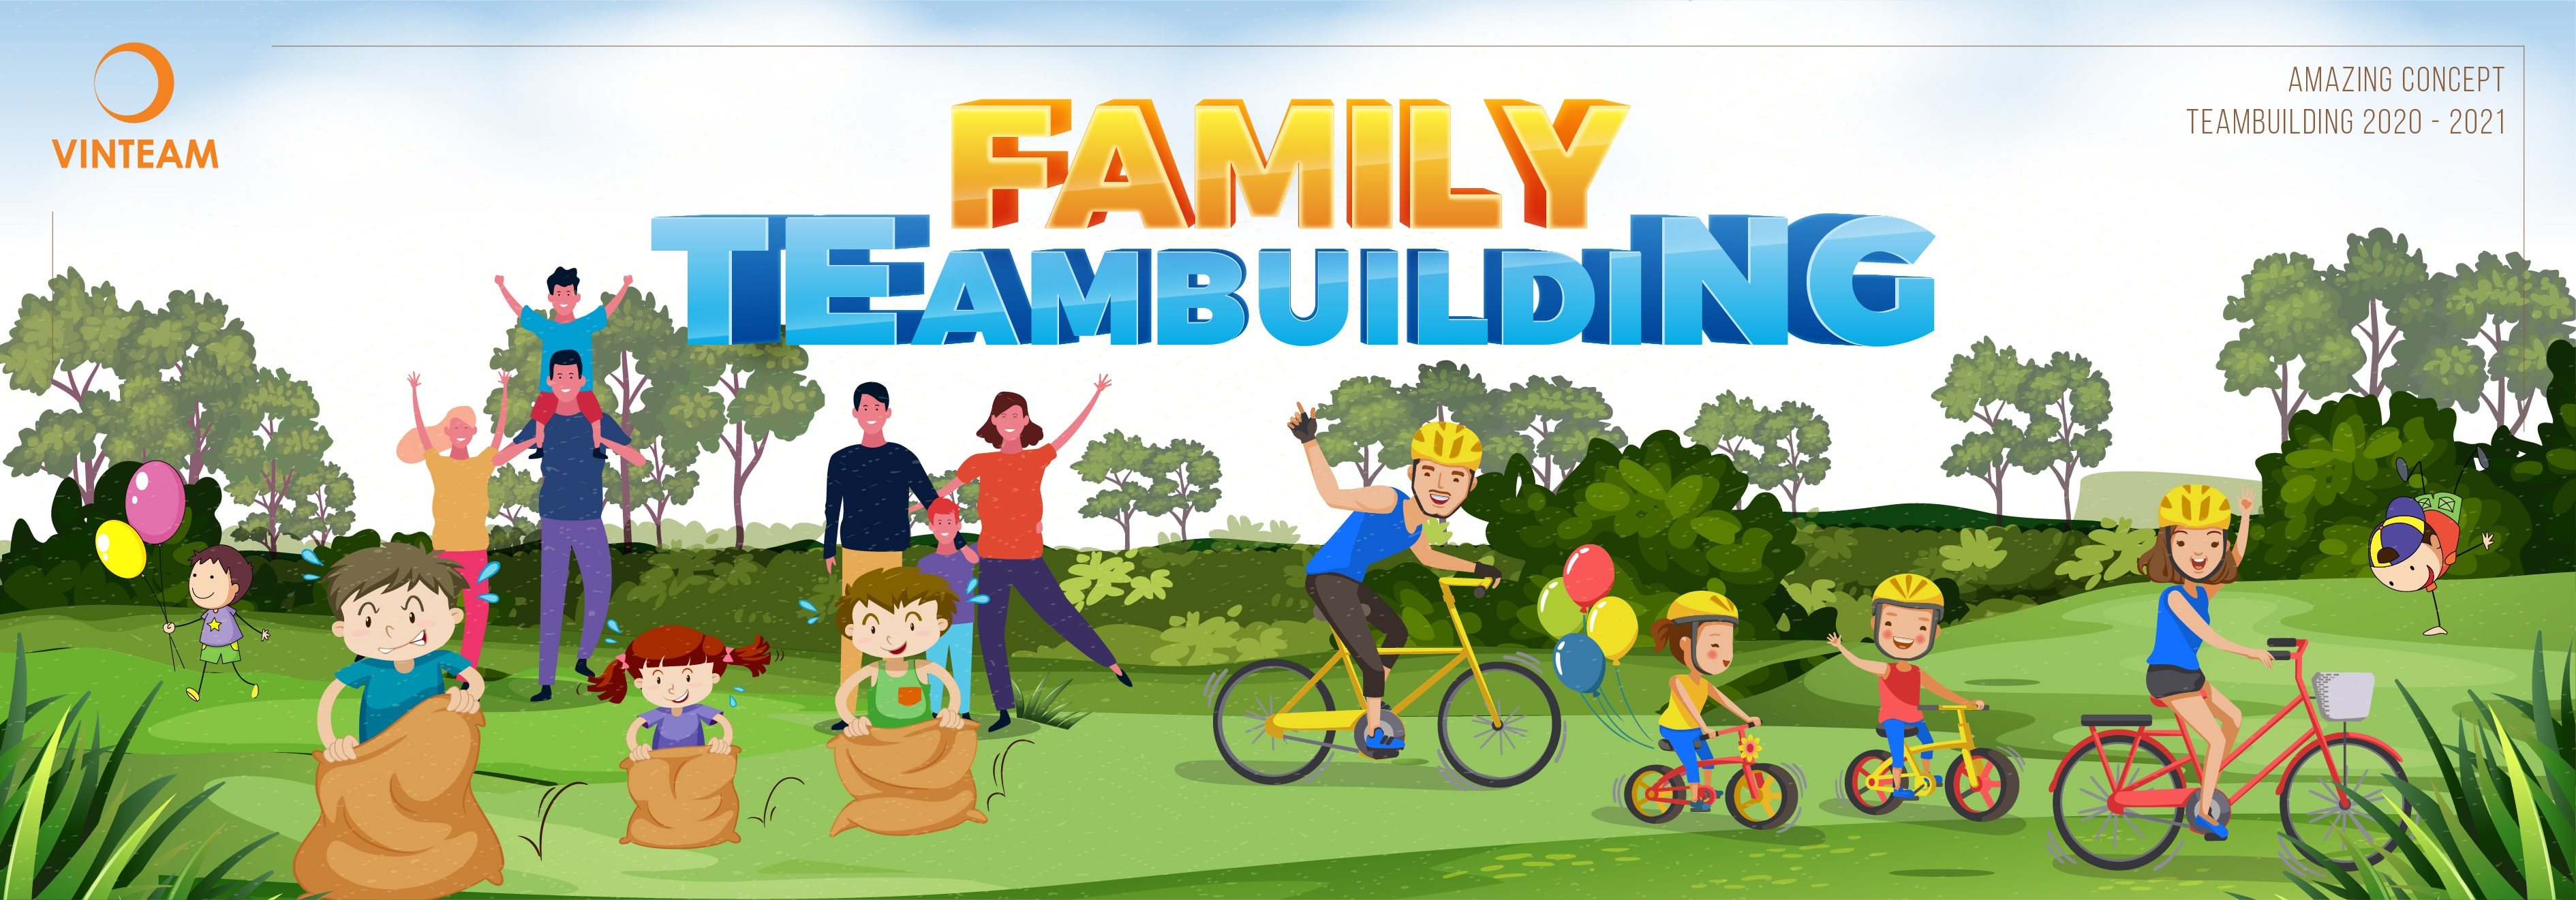 7-COVER-FAMILY-TEAMBUILDING-01-min